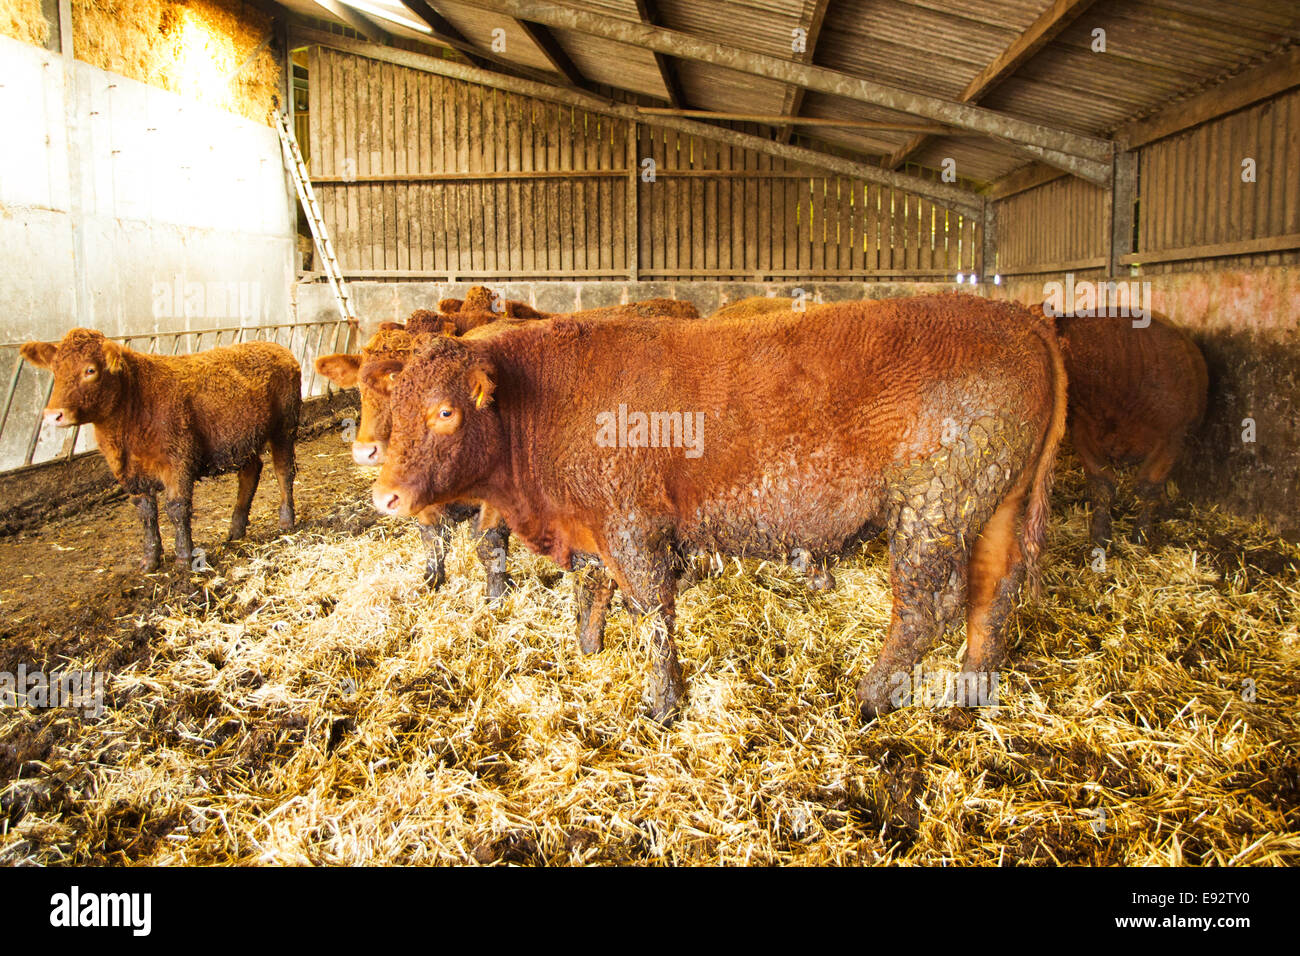 South Devon Cattle in there winter housing. - Stock Image